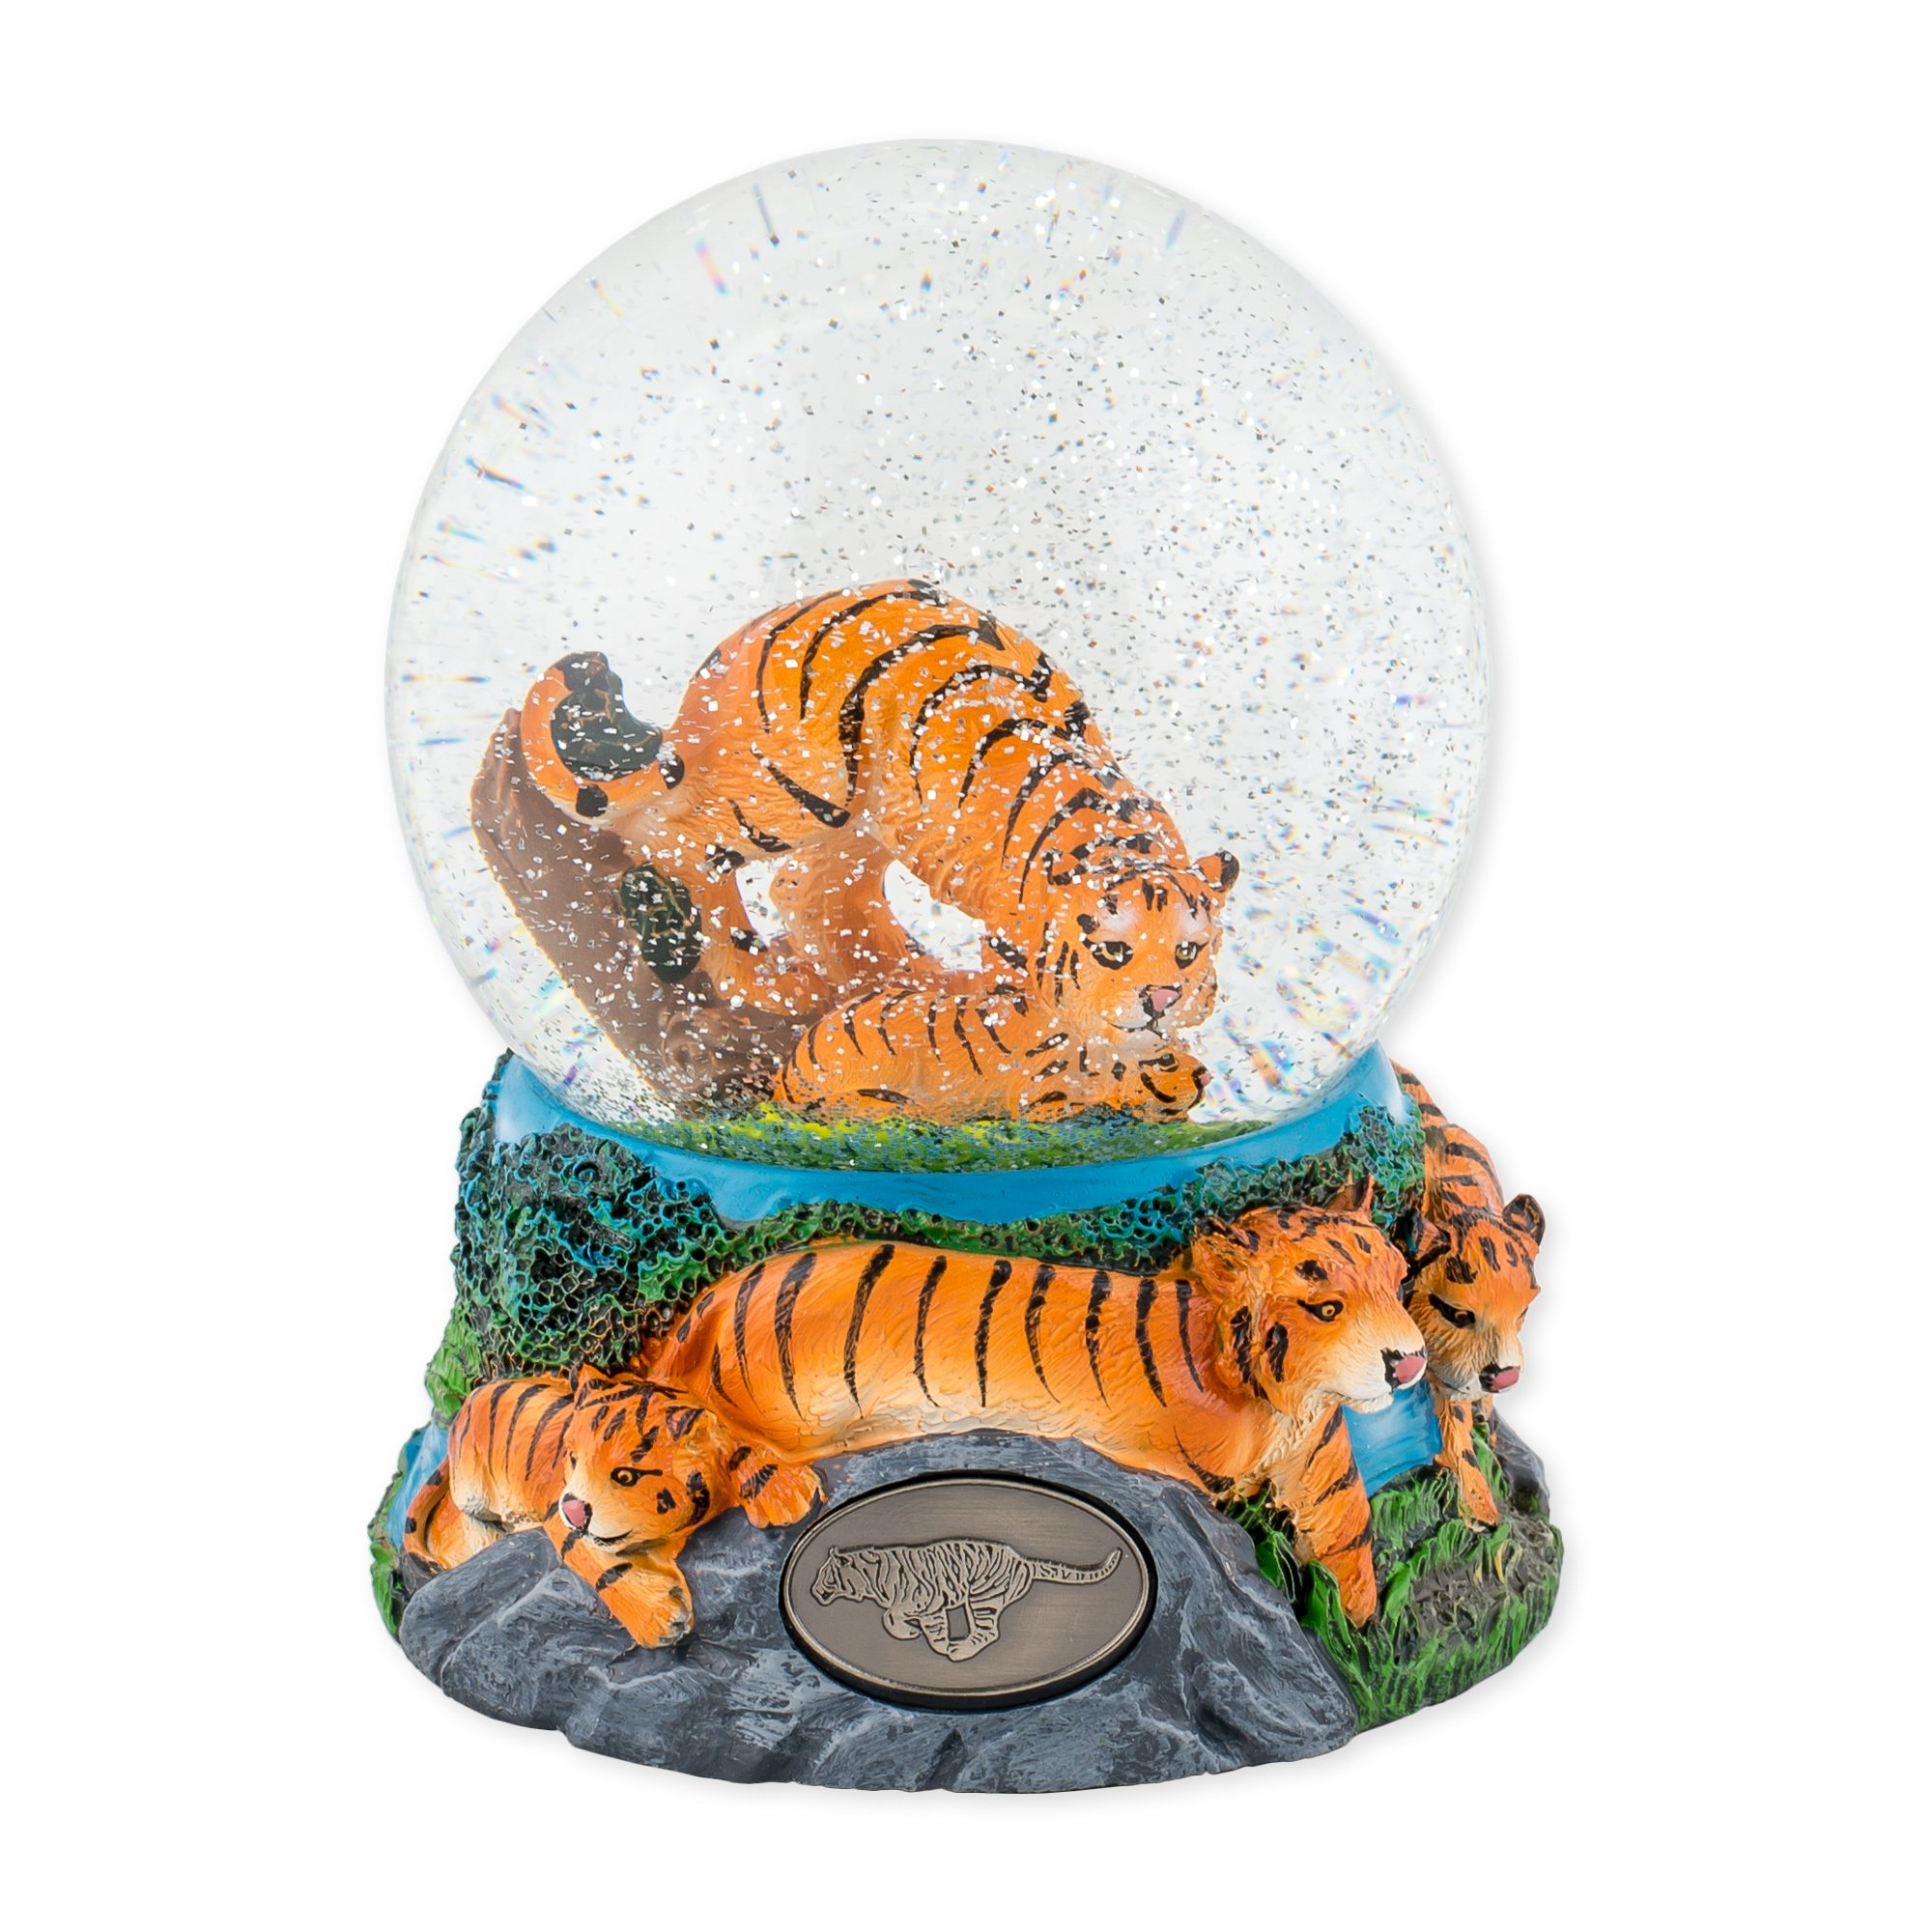 Playful Tigers 100mm Resin Glitter Water Globe Plays Tune Invitation to the Dance